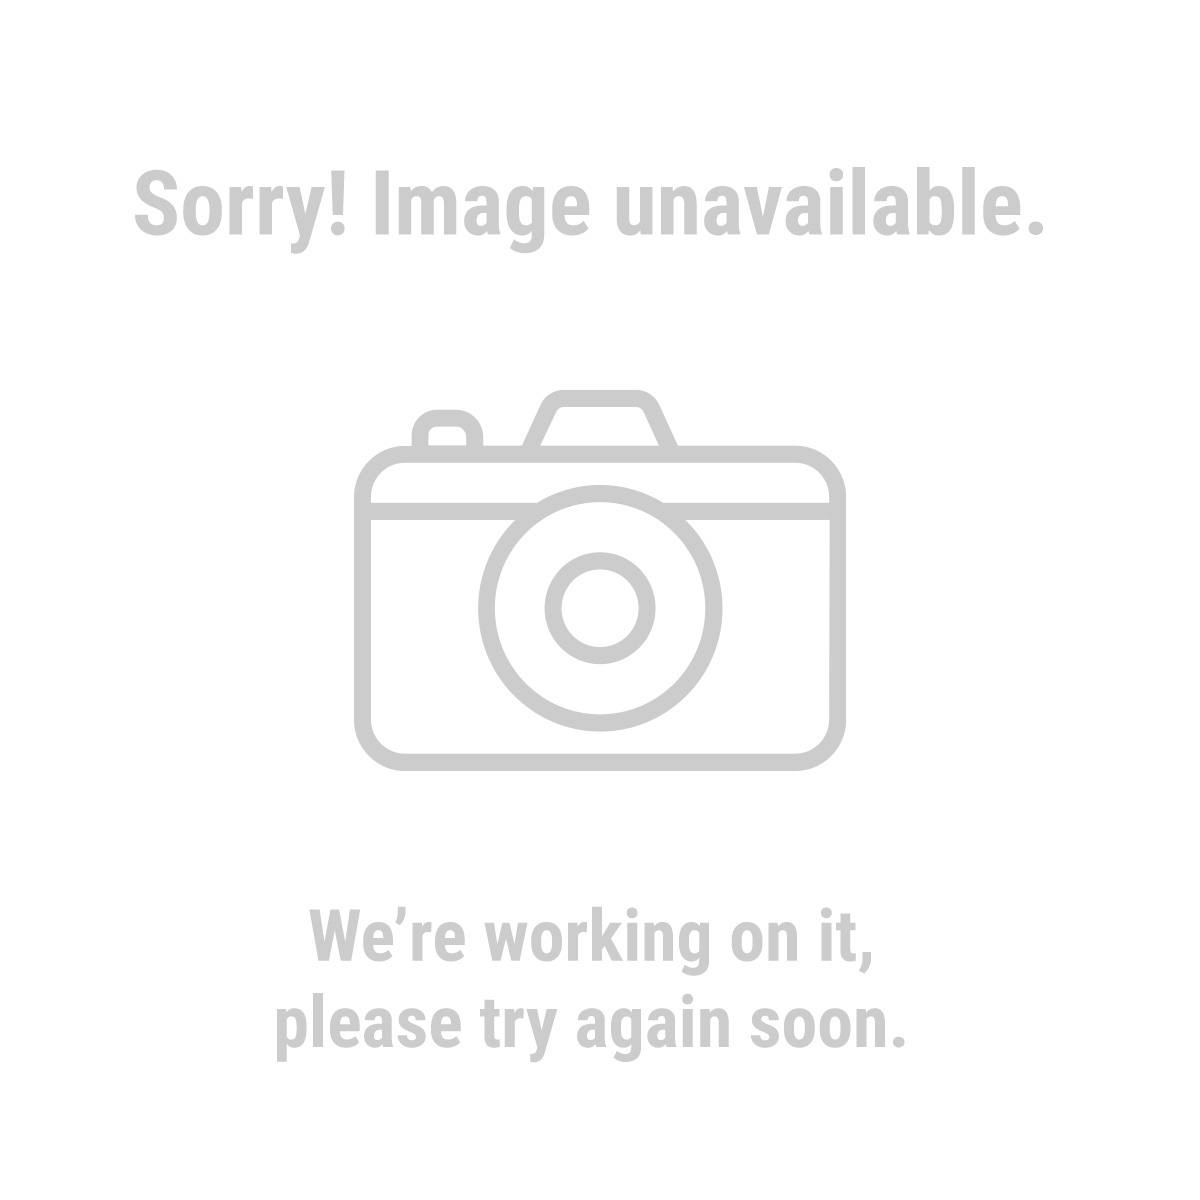 Haul-Master 61783 100 ft. x 4mm Aircraft Grade Wire Rope